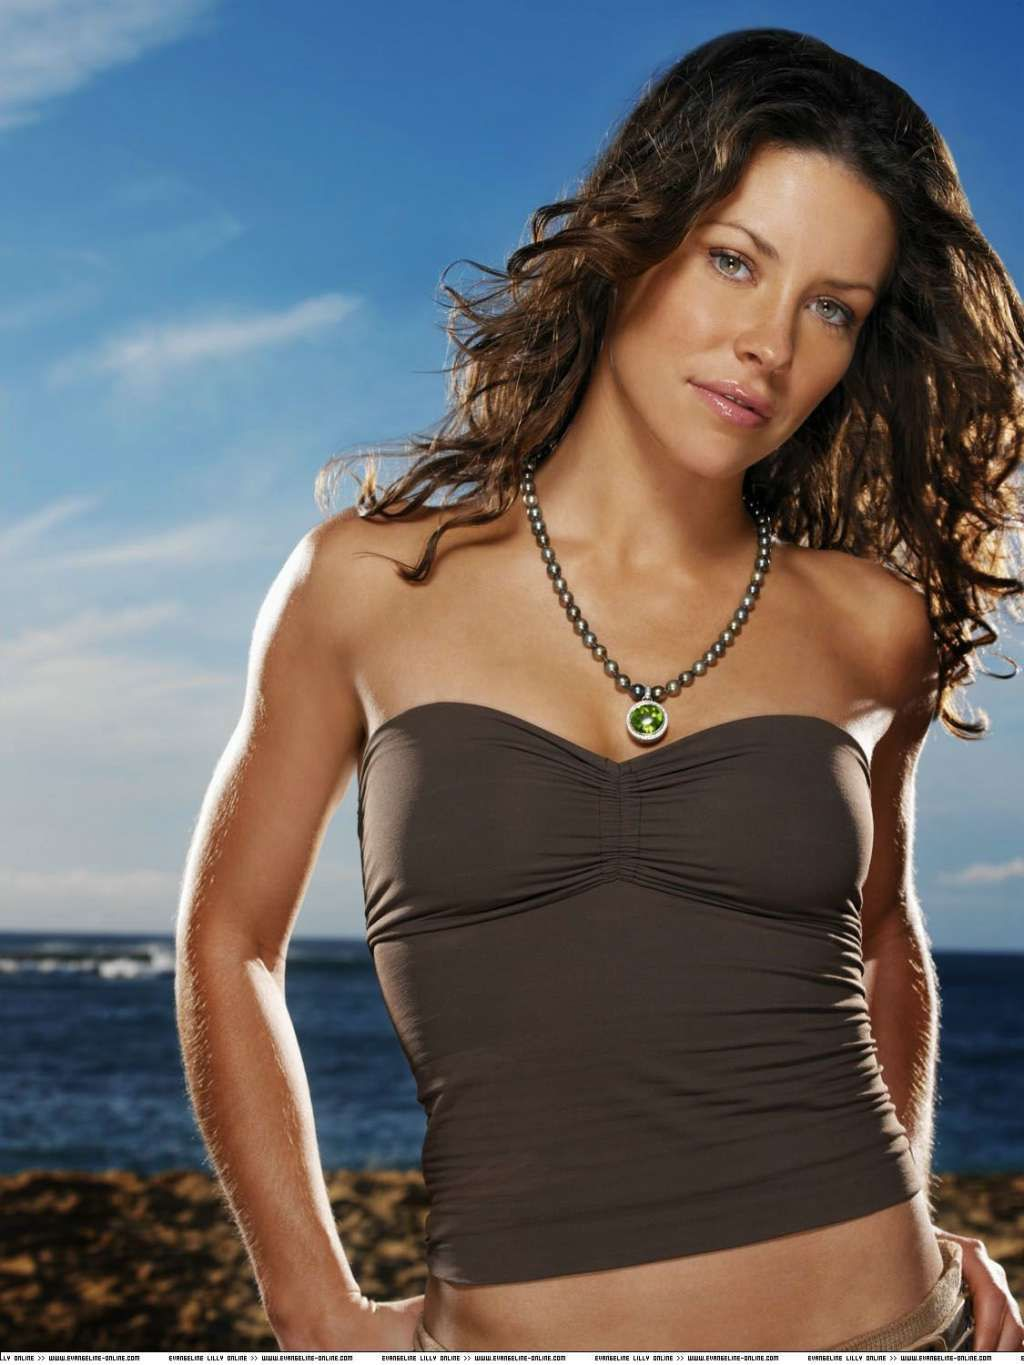 Opinion Evangeline lily nude photos remarkable, the